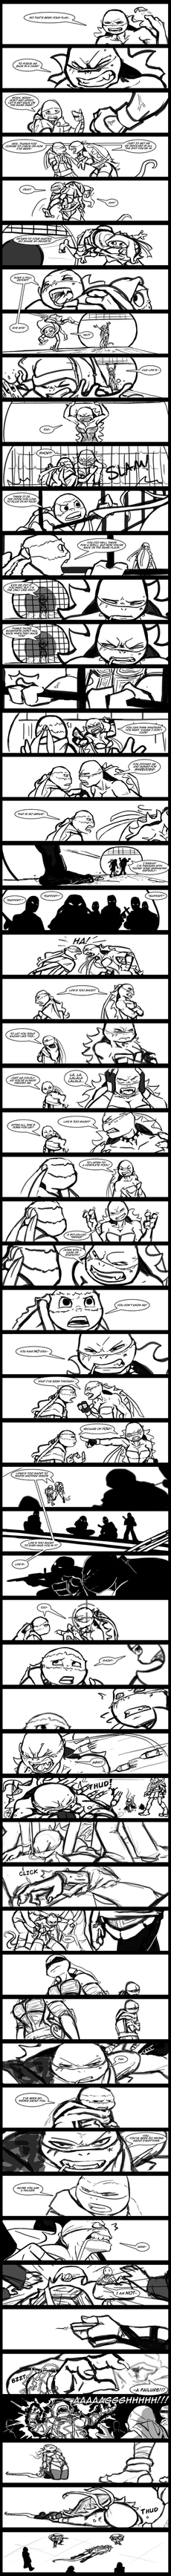 Rough/WiP- 'Life's Too Short' Song Comic Part 2/2 by R2ninjaturtle